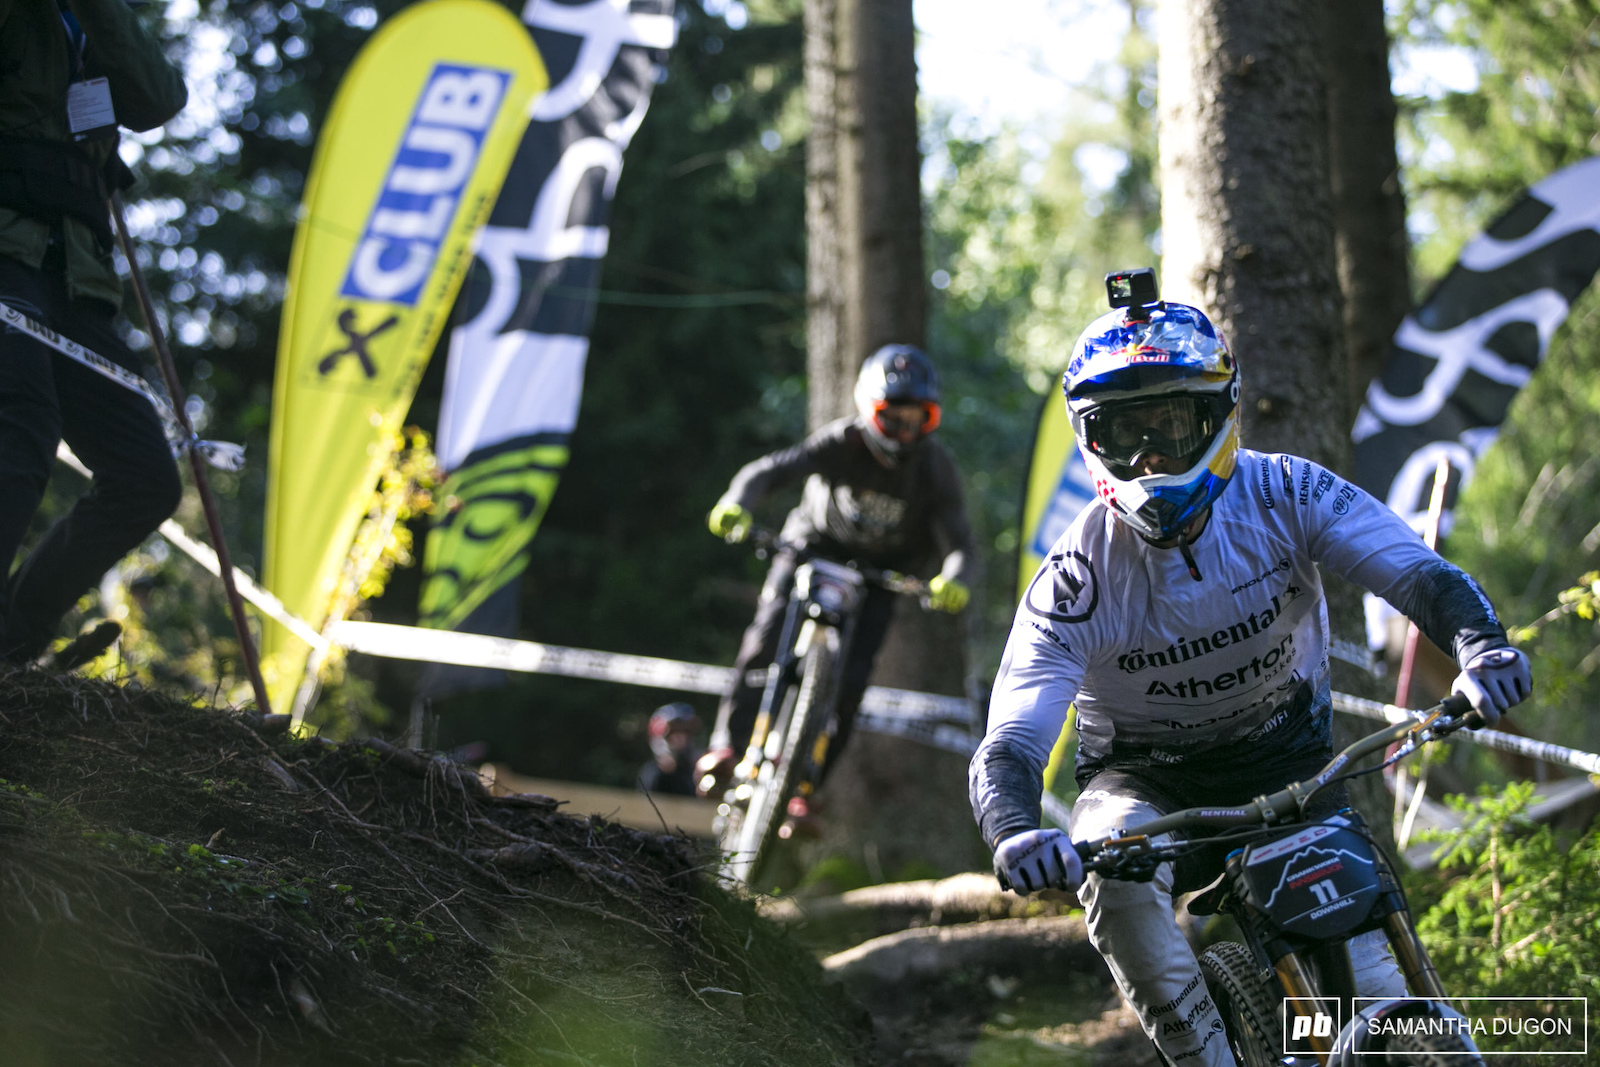 The Atherton crew were on track today getting in some downhill runs before heading to Leogang.